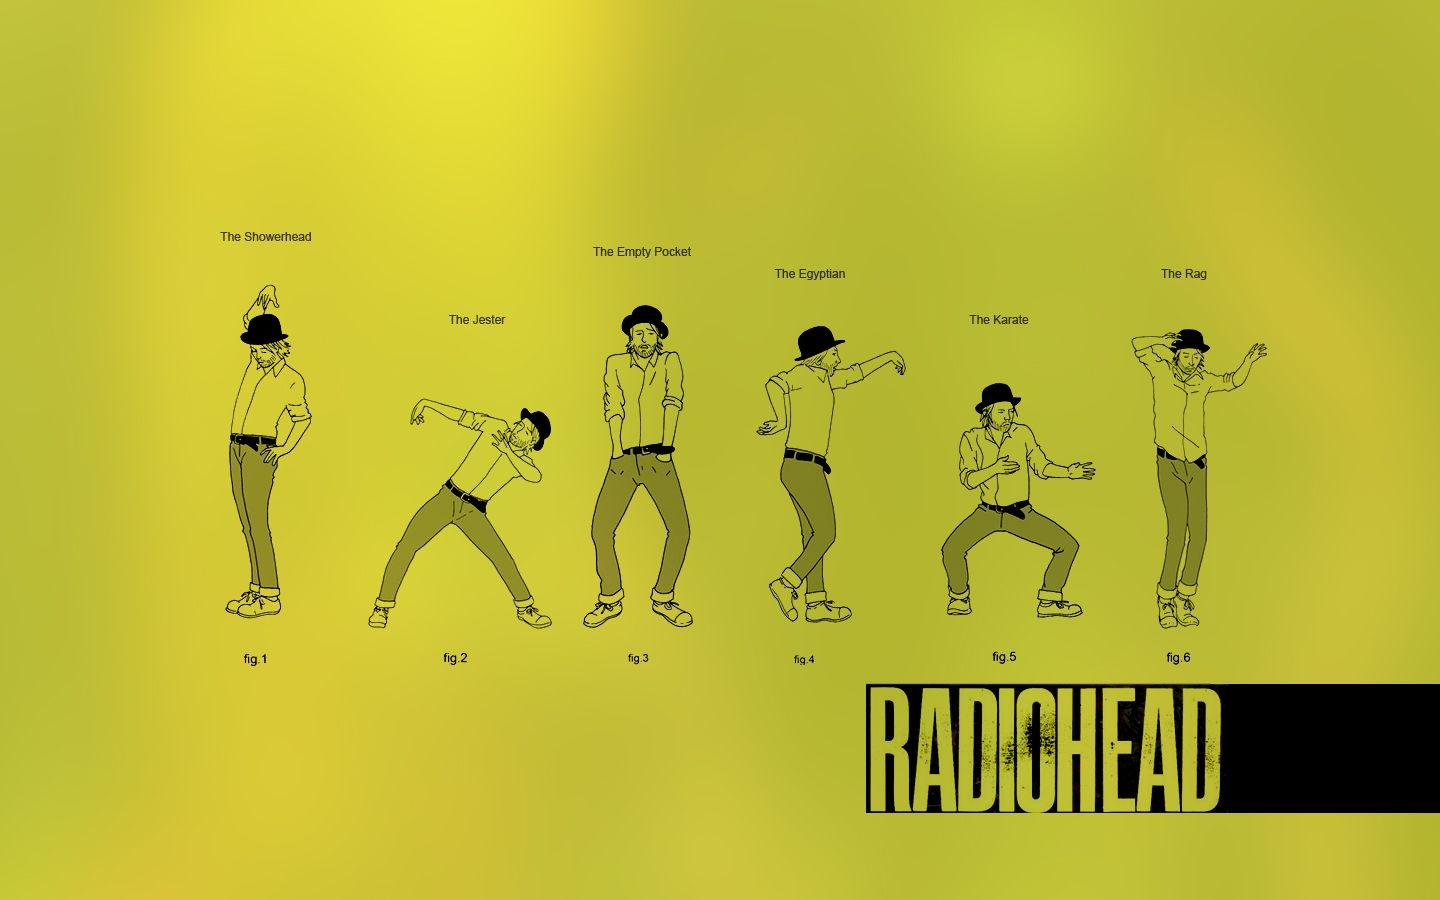 Radiohead Wallpaper Collection Pinterest Radiohead Music And